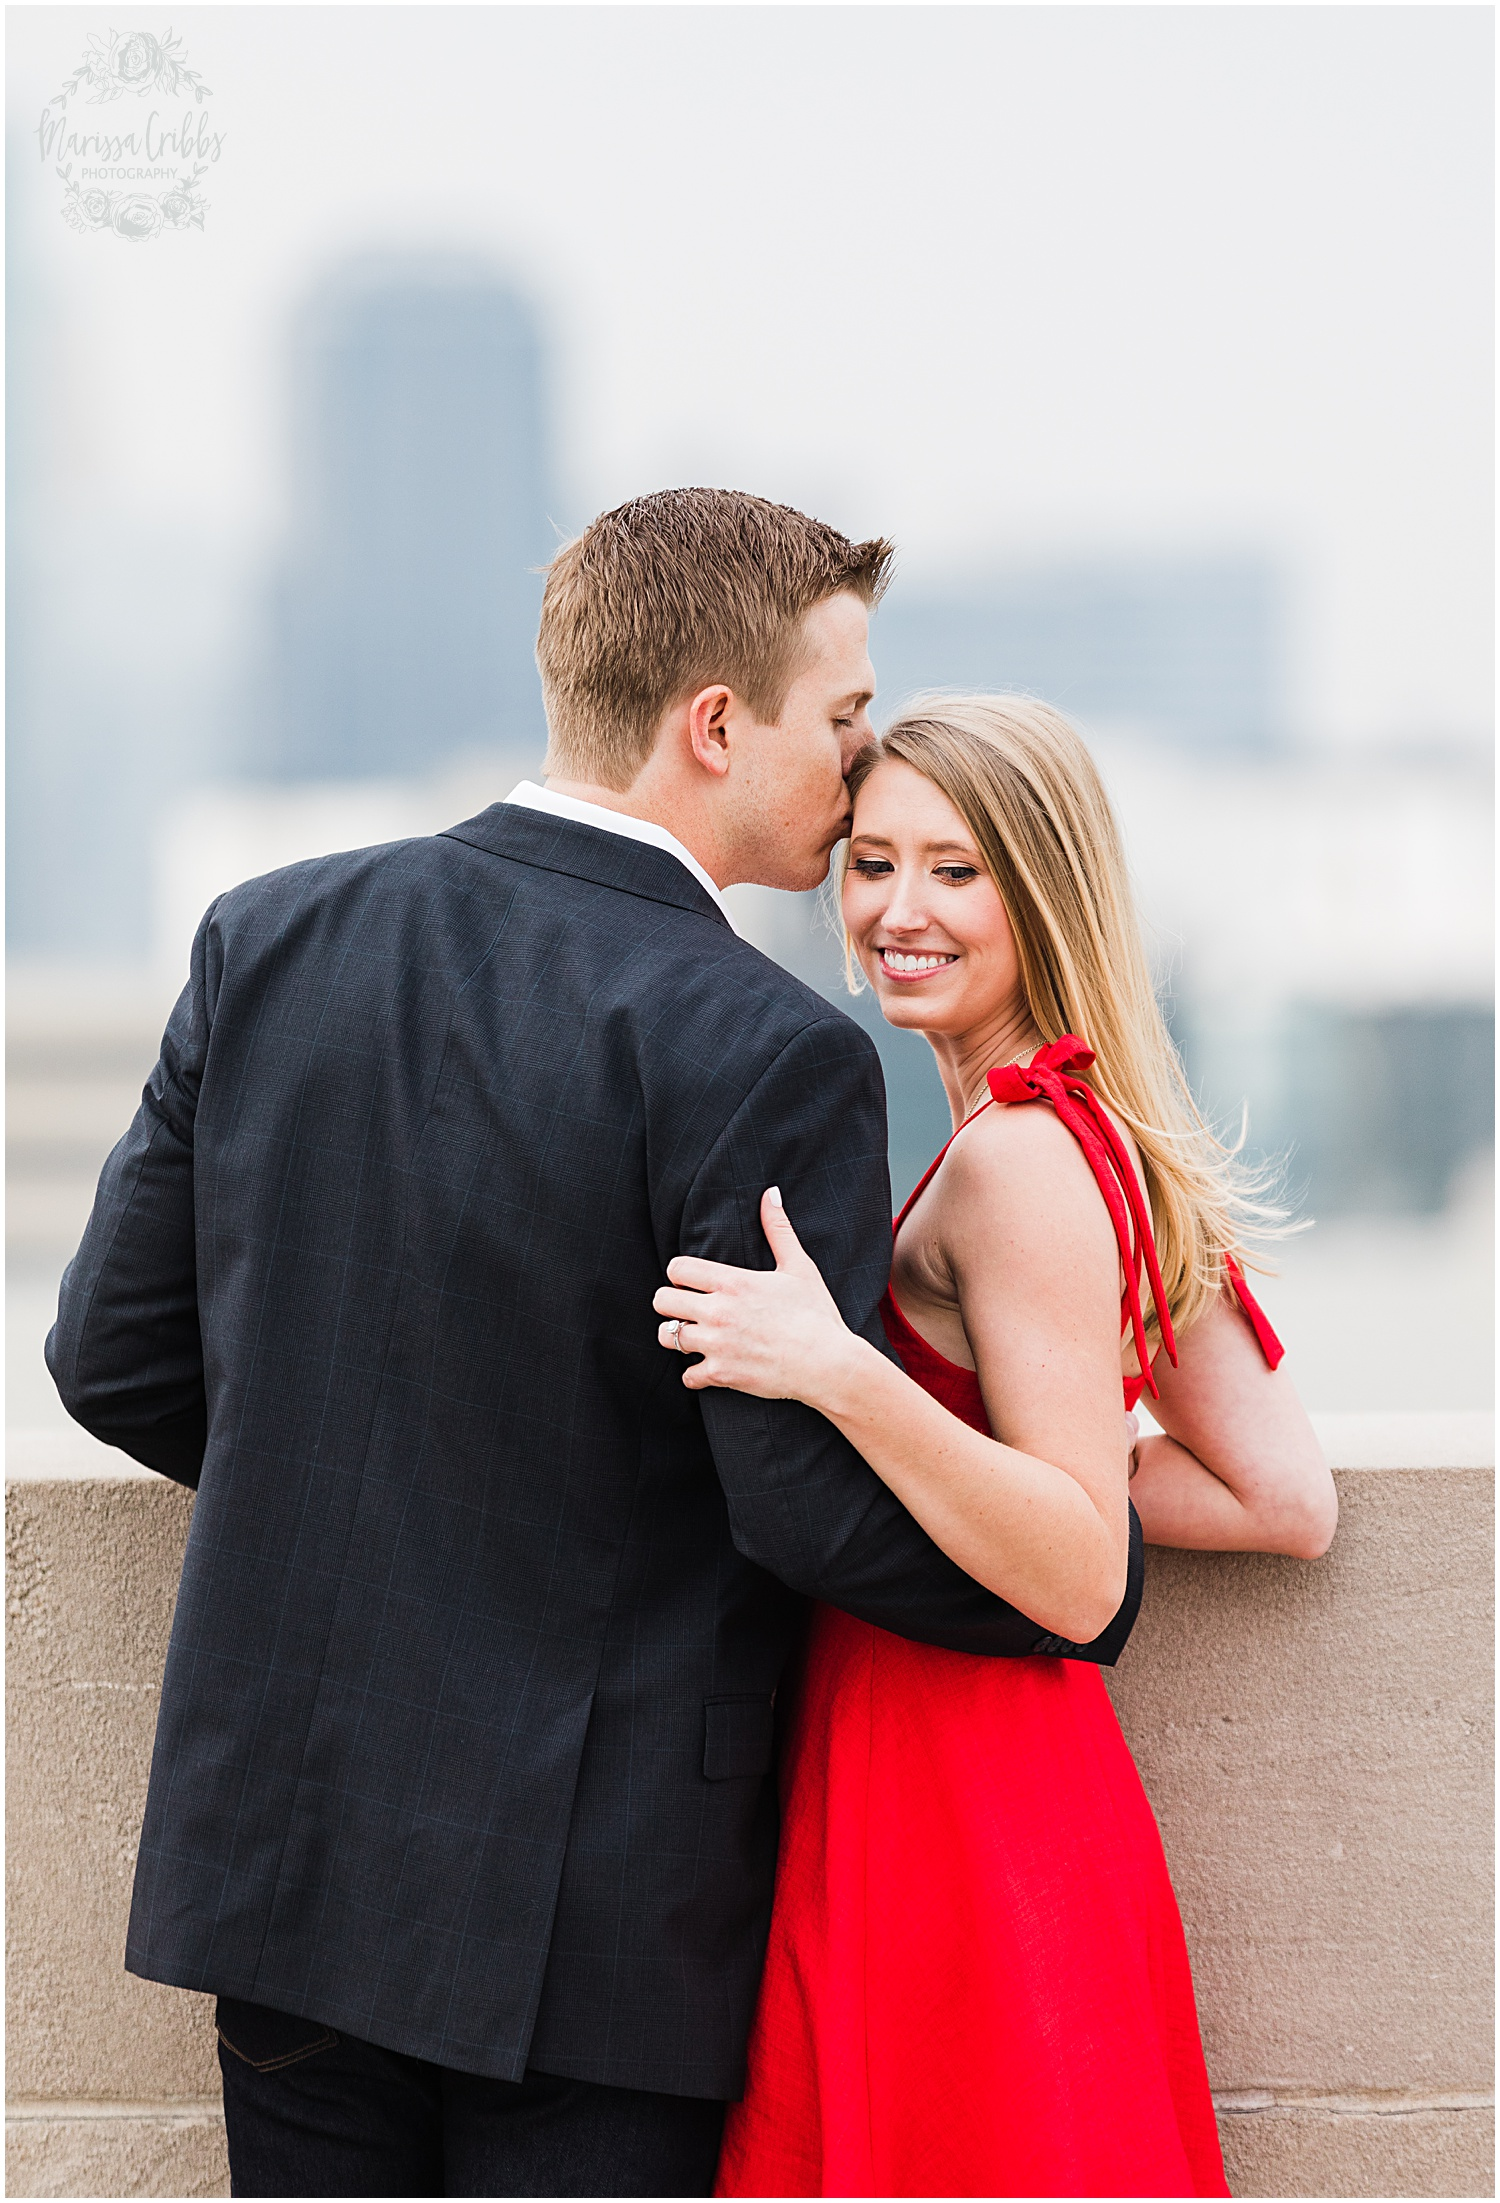 MADDY & KYLE ENGAGEMENT | MARISSA CRIBBS PHOTOGRAPHY_7621.jpg